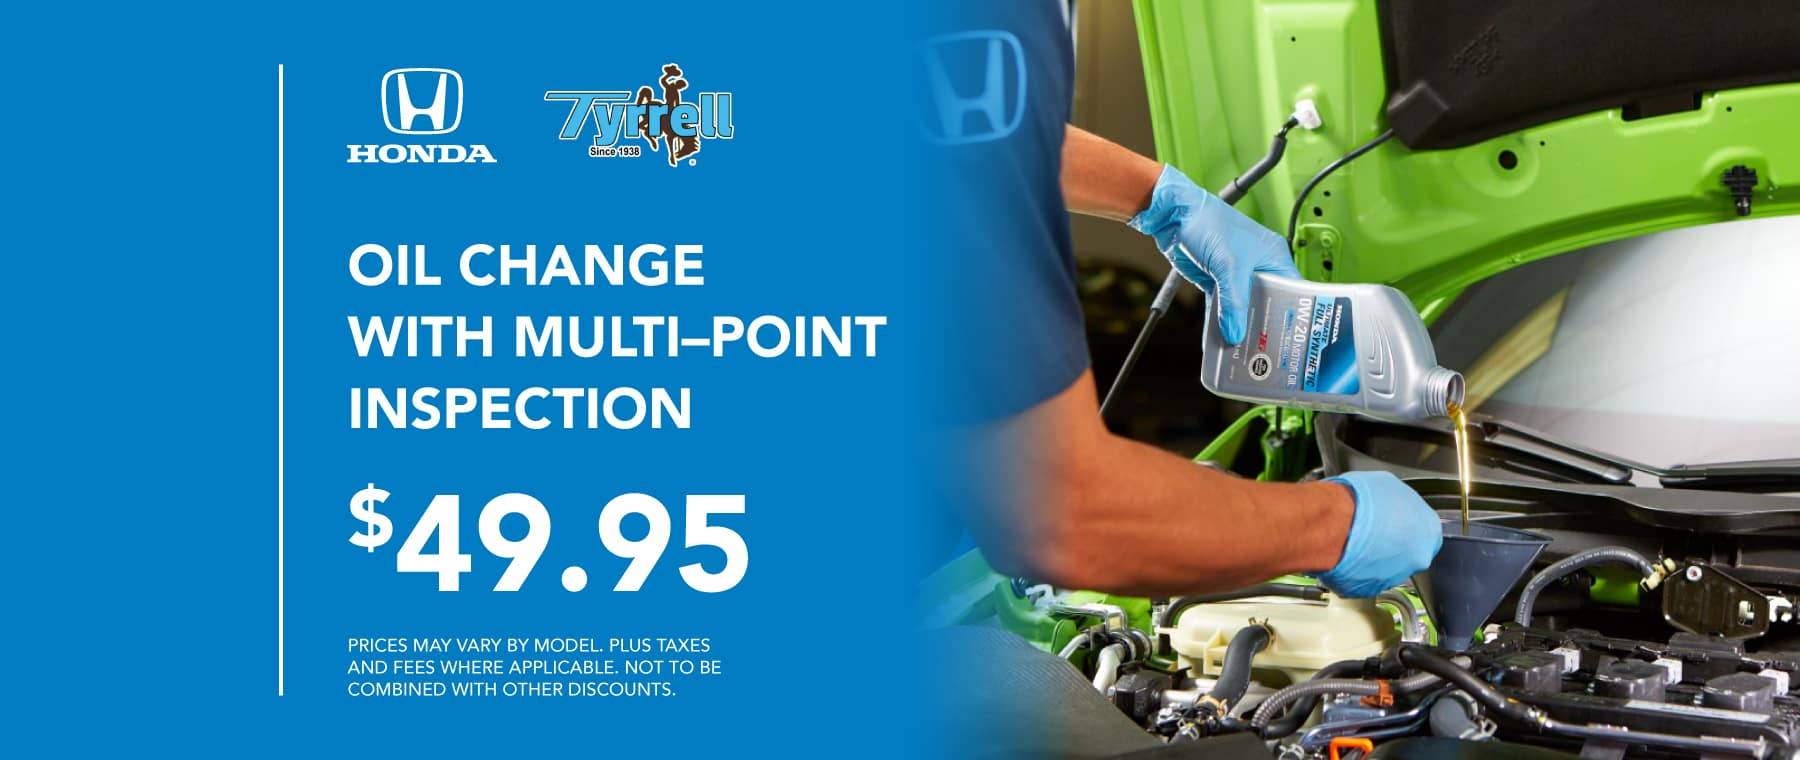 Tyrrell-Honda—Service-Special—May2021—Oil-Change_Banner—1800×760